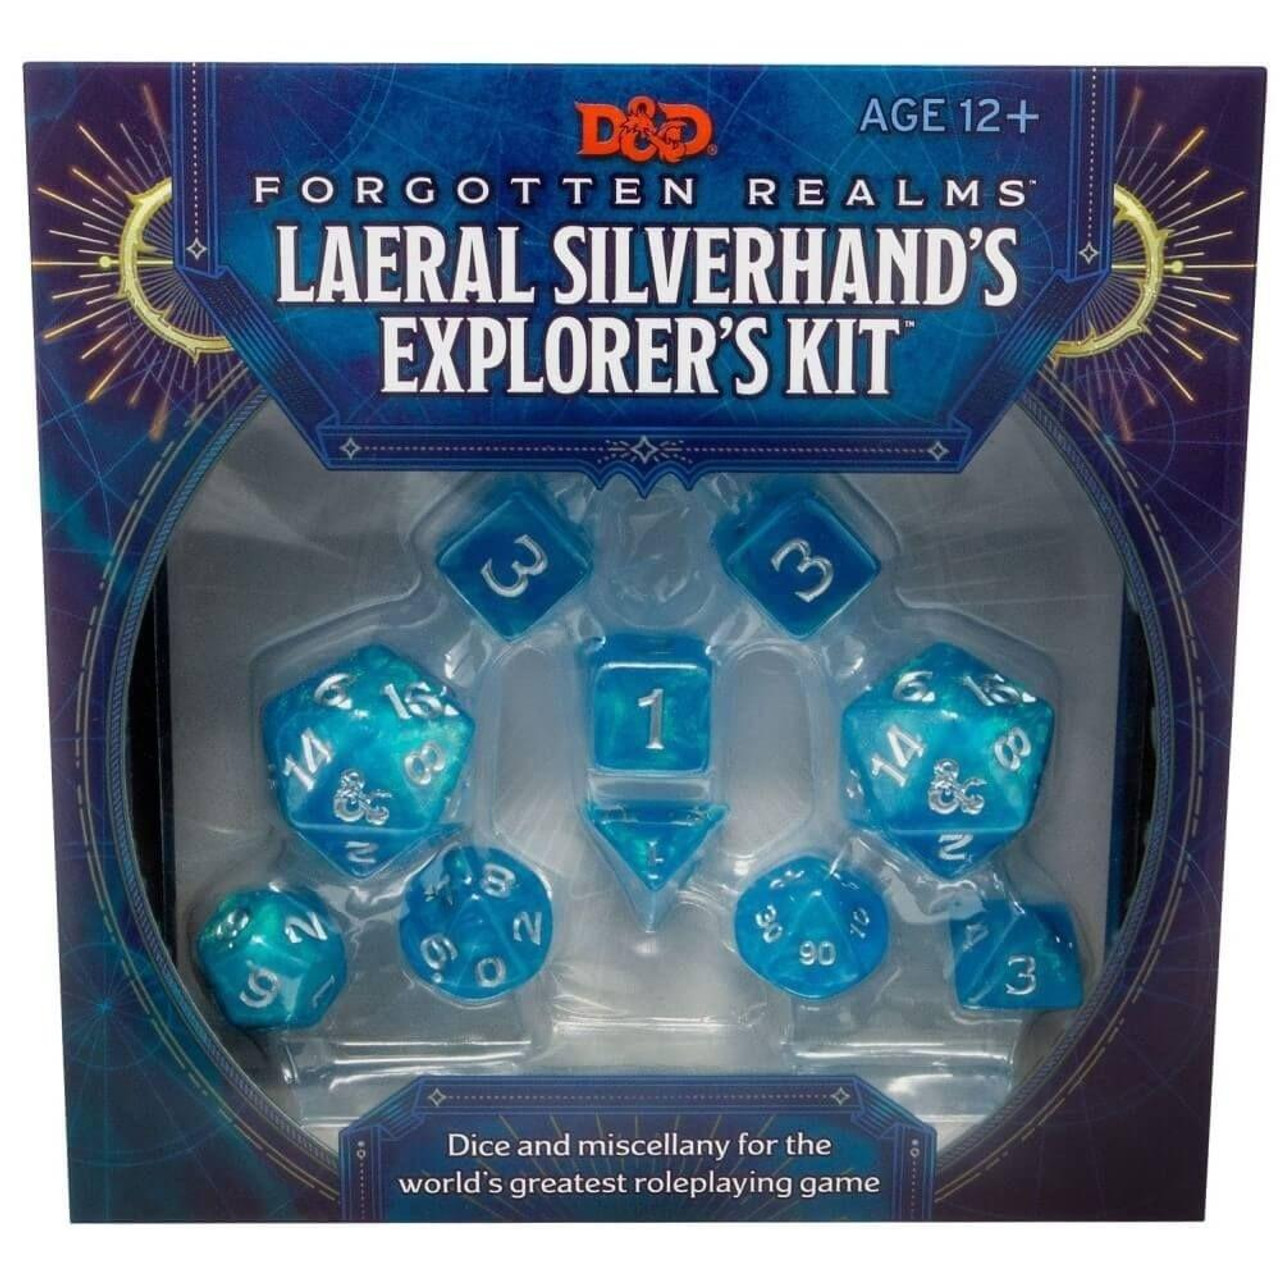 Wizards of the Coast DandD - Forgotten Realms - Laeral Silverhands Explorers Kit